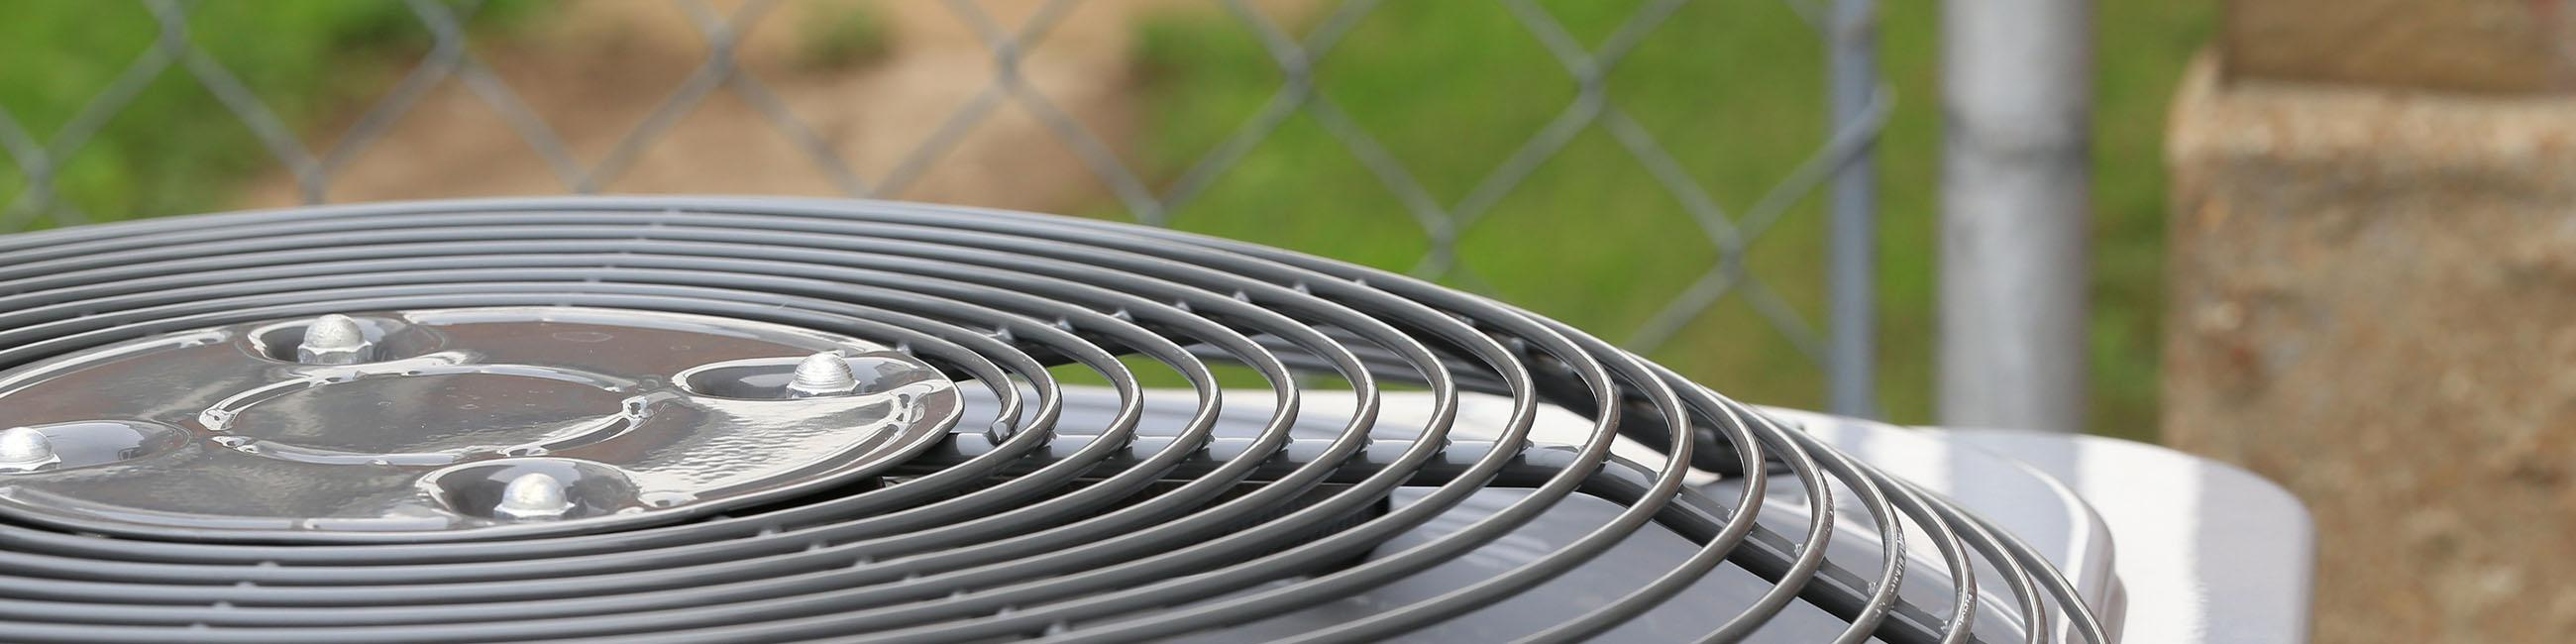 heating and air conditioning services - hvac, orange county, california